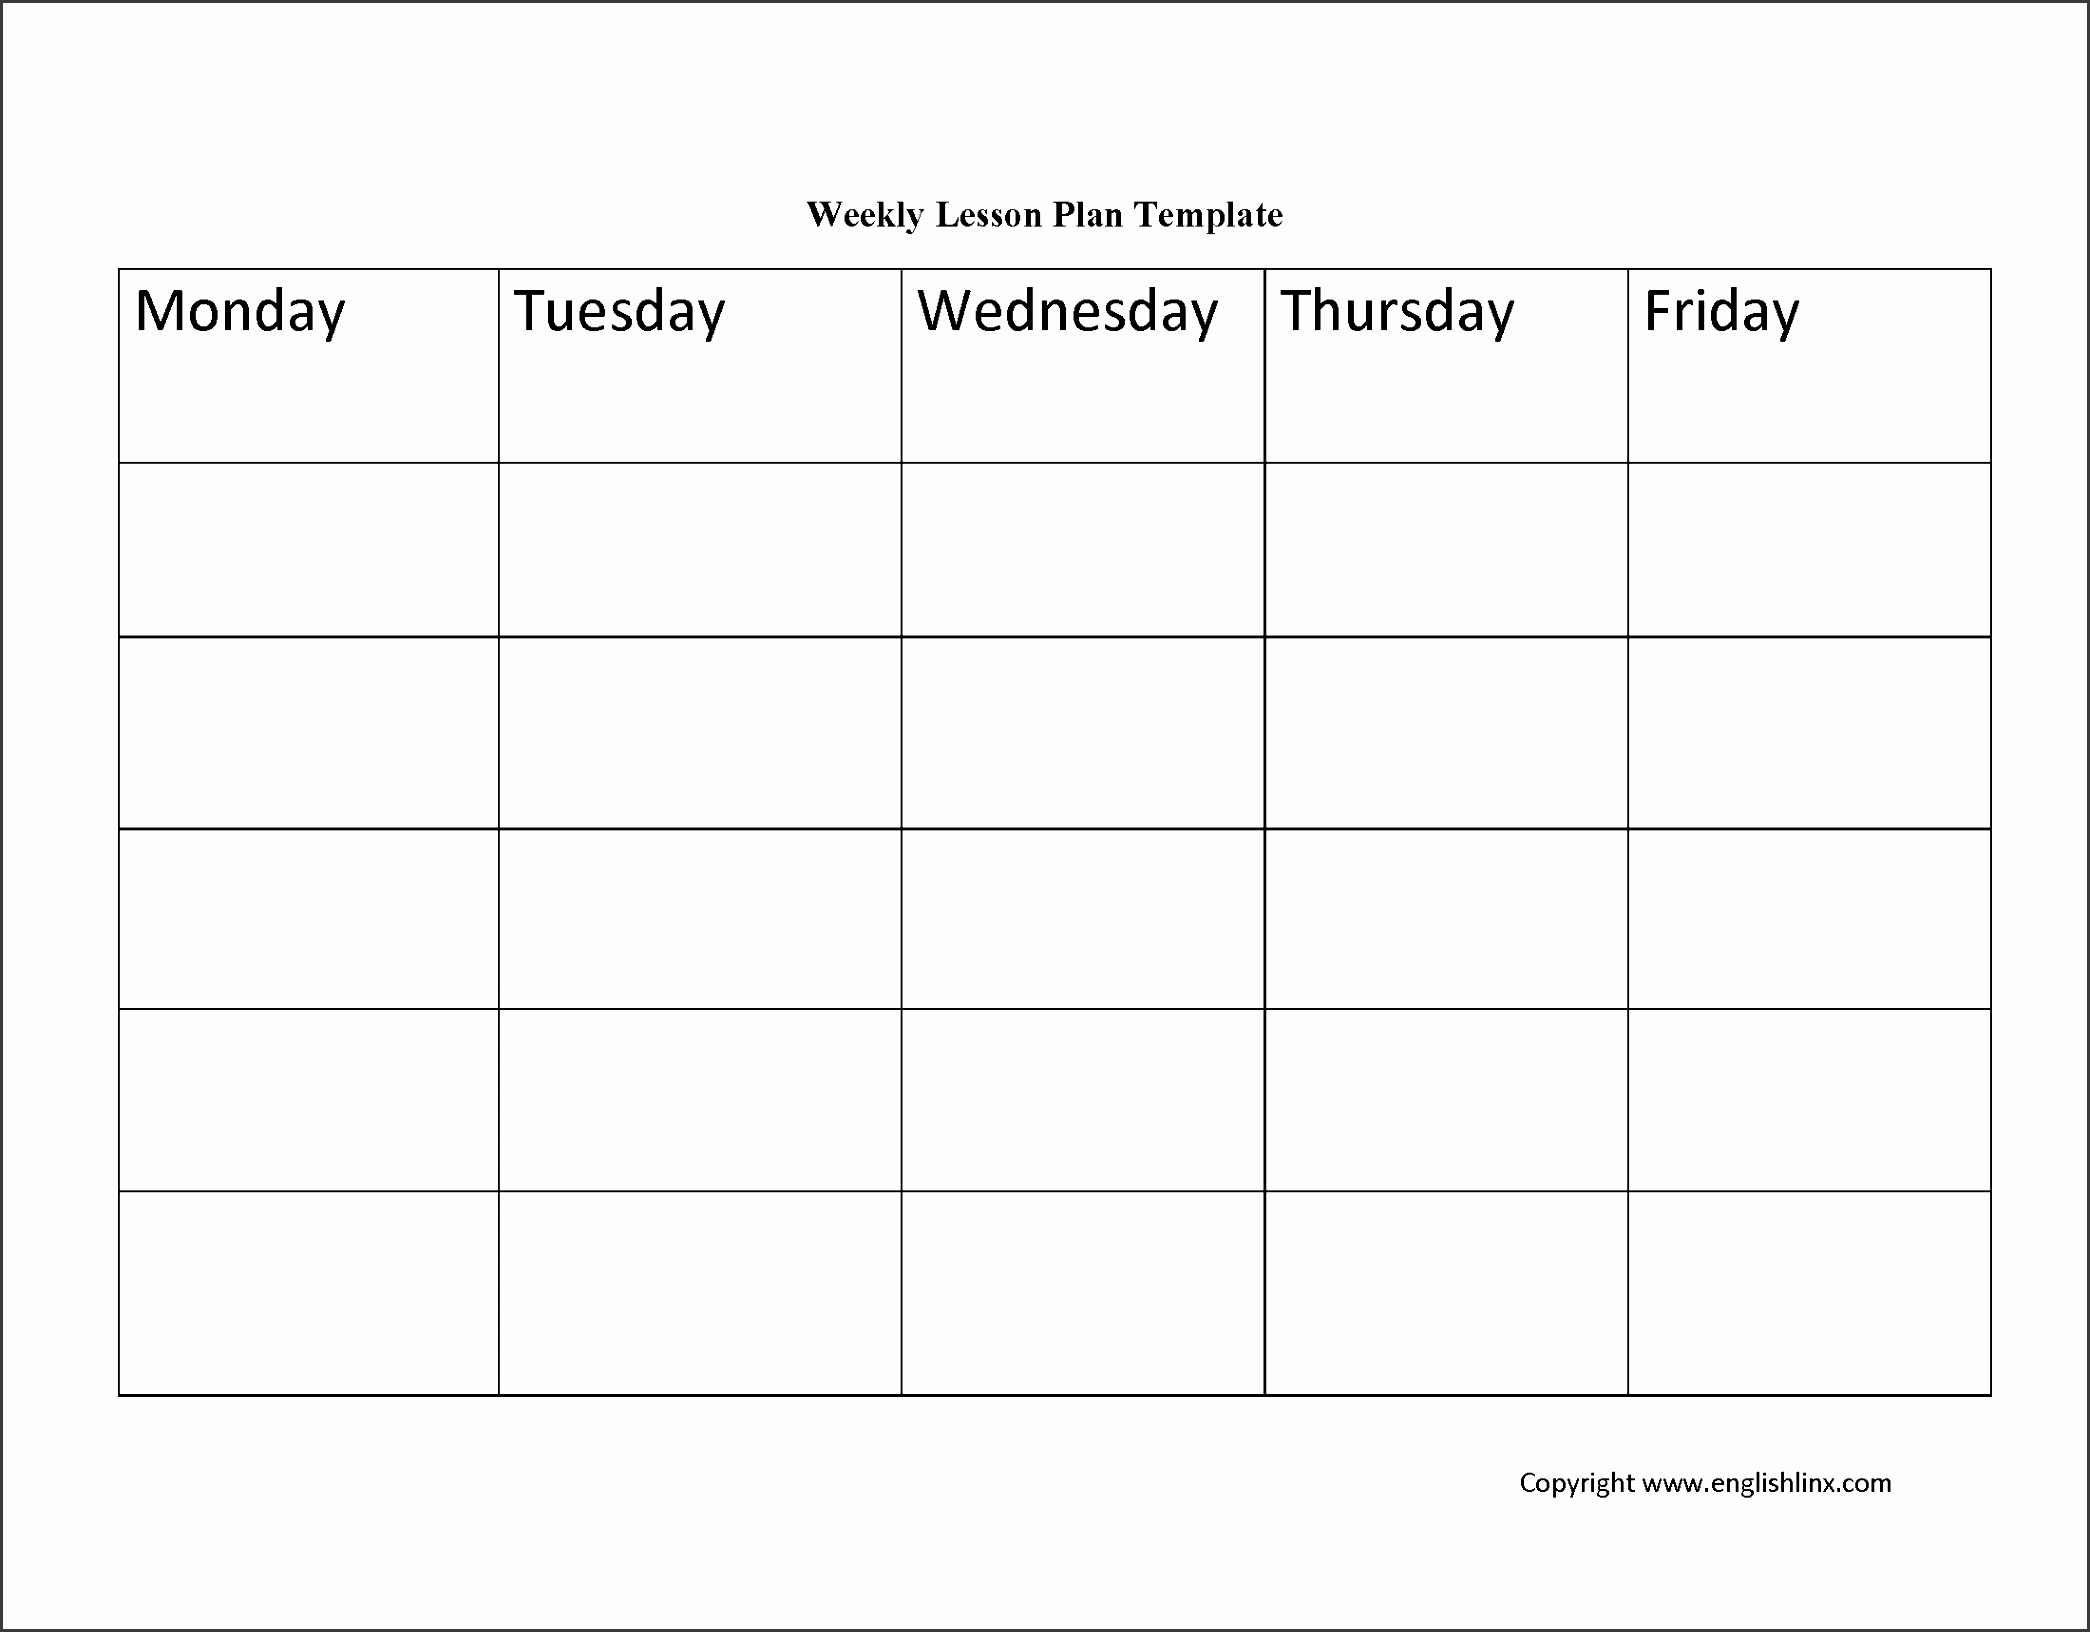 Weekly Lesson Plan Template Doc Best Of 10 Academic Lesson Planner Template Sampletemplatess